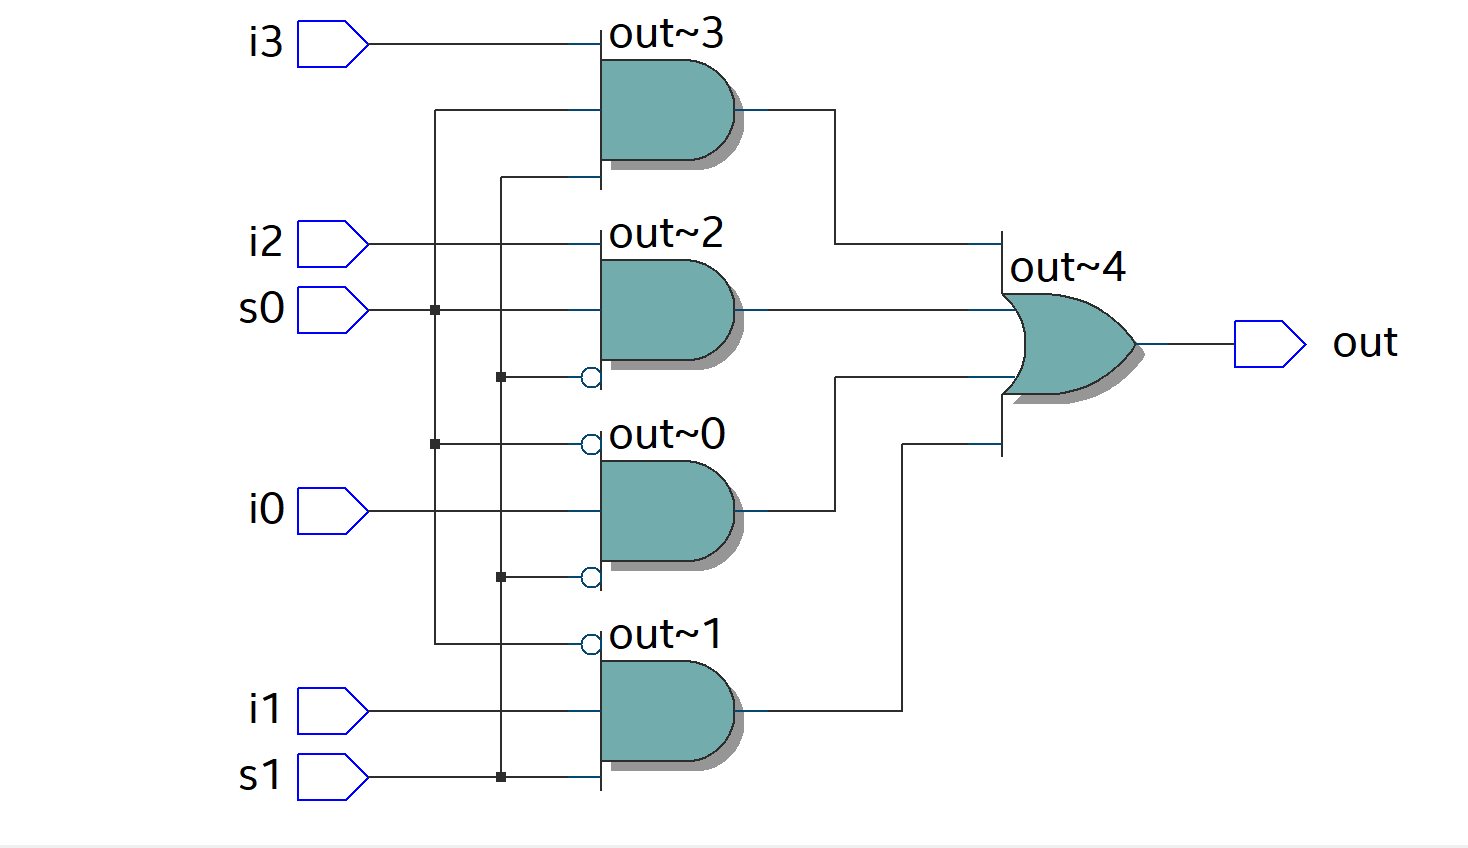 hight resolution of 4 1 mux using logic equations and conditional operator verilog